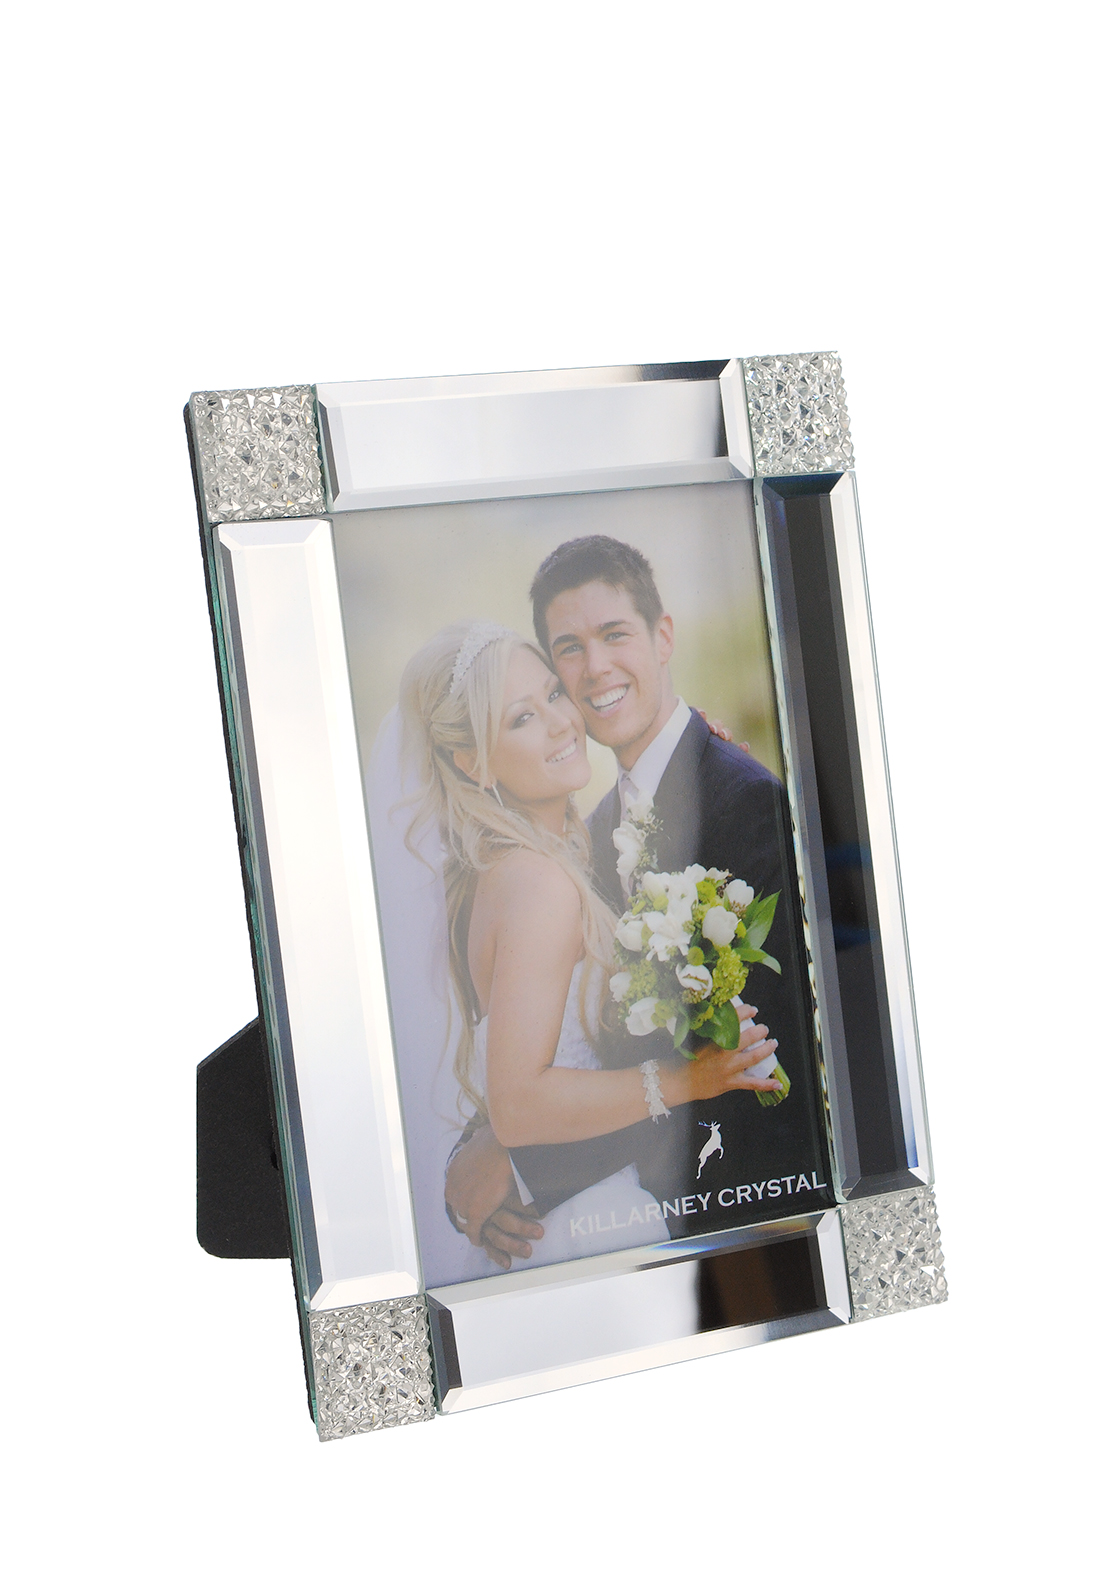 Killarney Crystal Platinum Collection Photo Frame, 4 x 6 inches